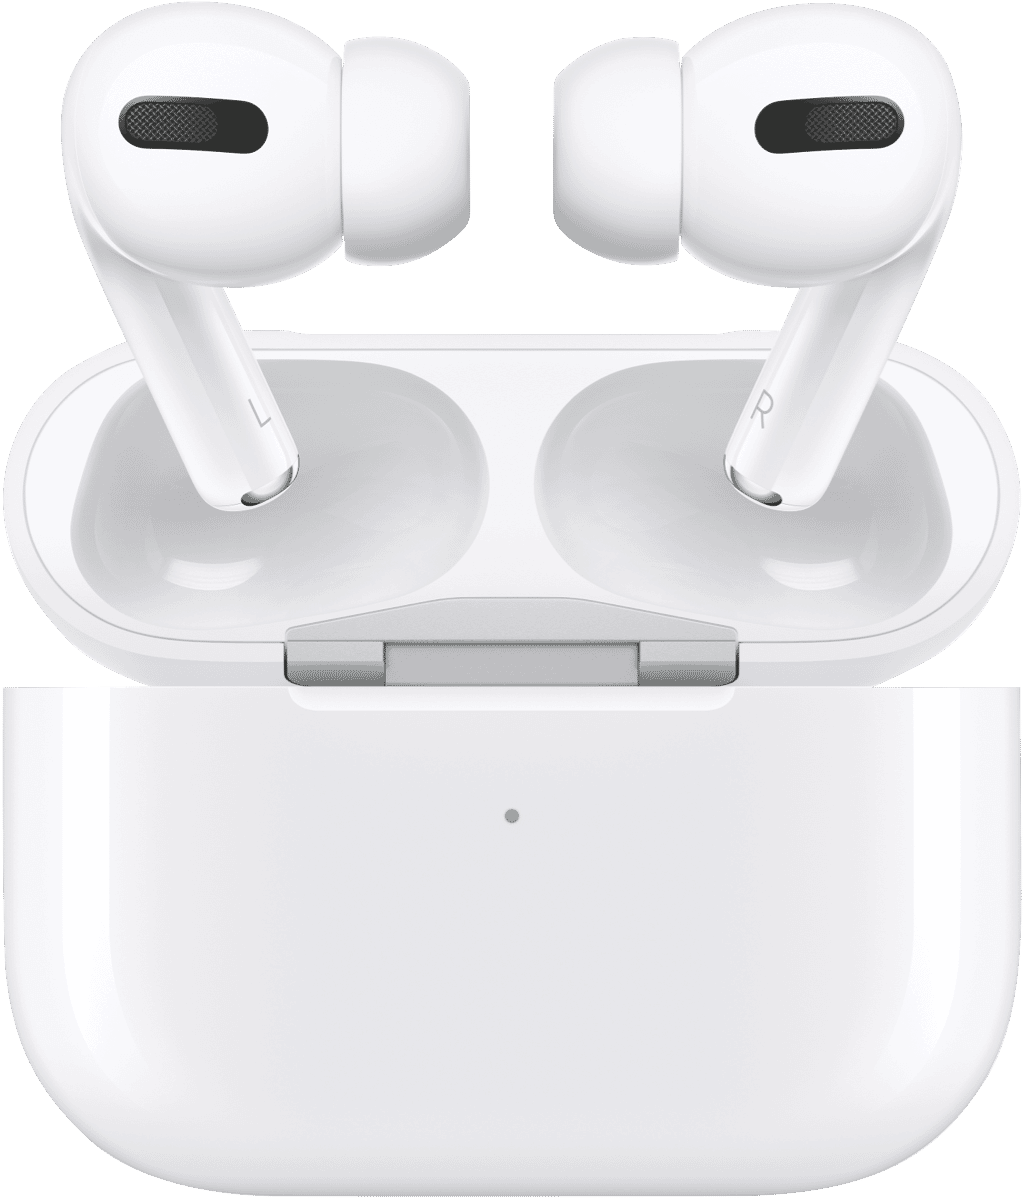 Iphone Accessories Apple Cell Phone Accessories Iphone Apple Airpods 2